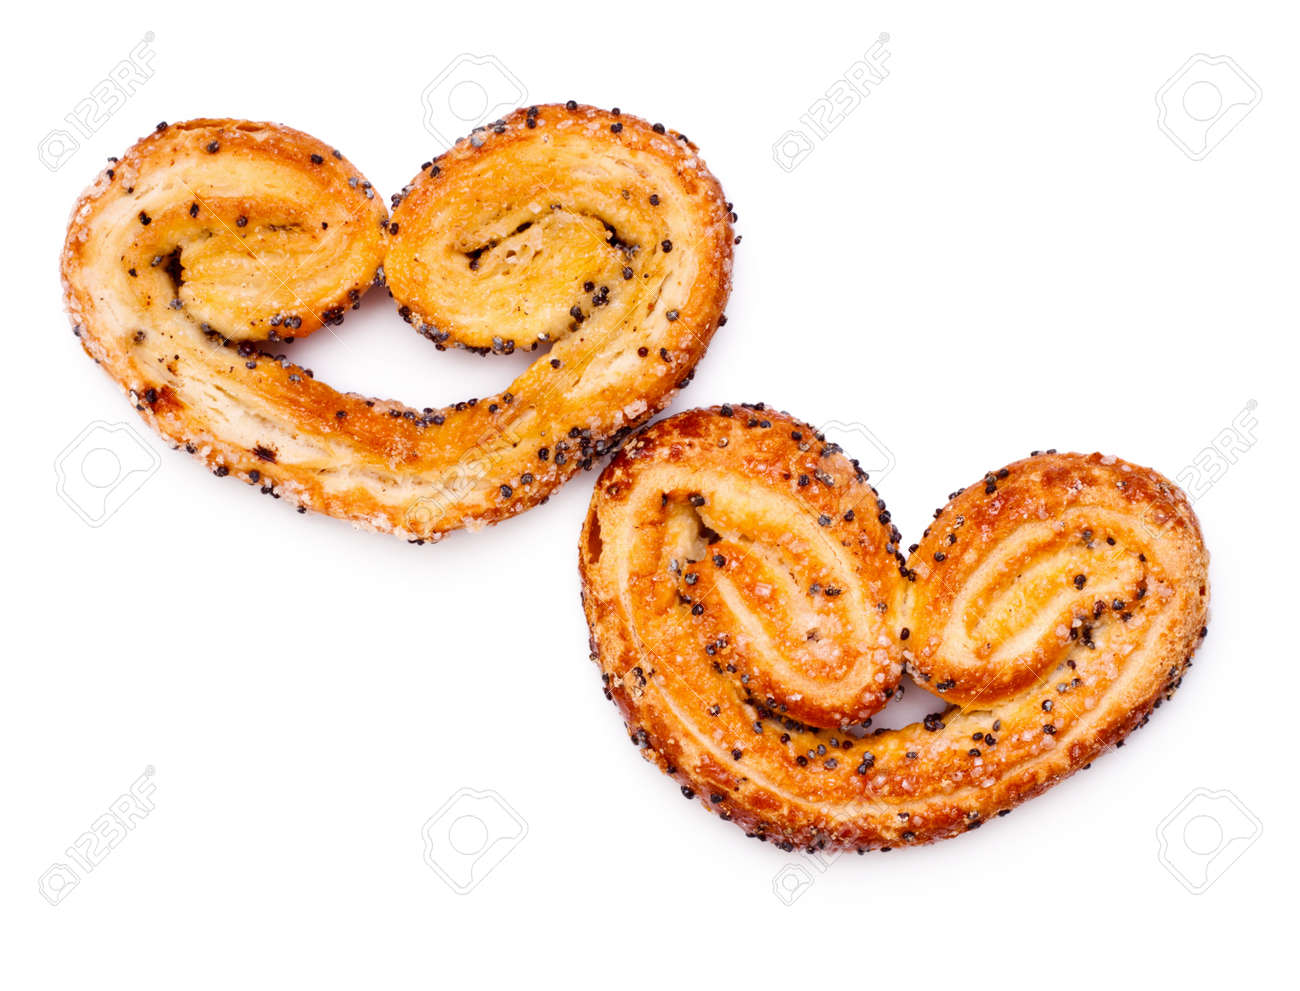 heart shaped cookies isolated on white background Stock Photo - 8698581